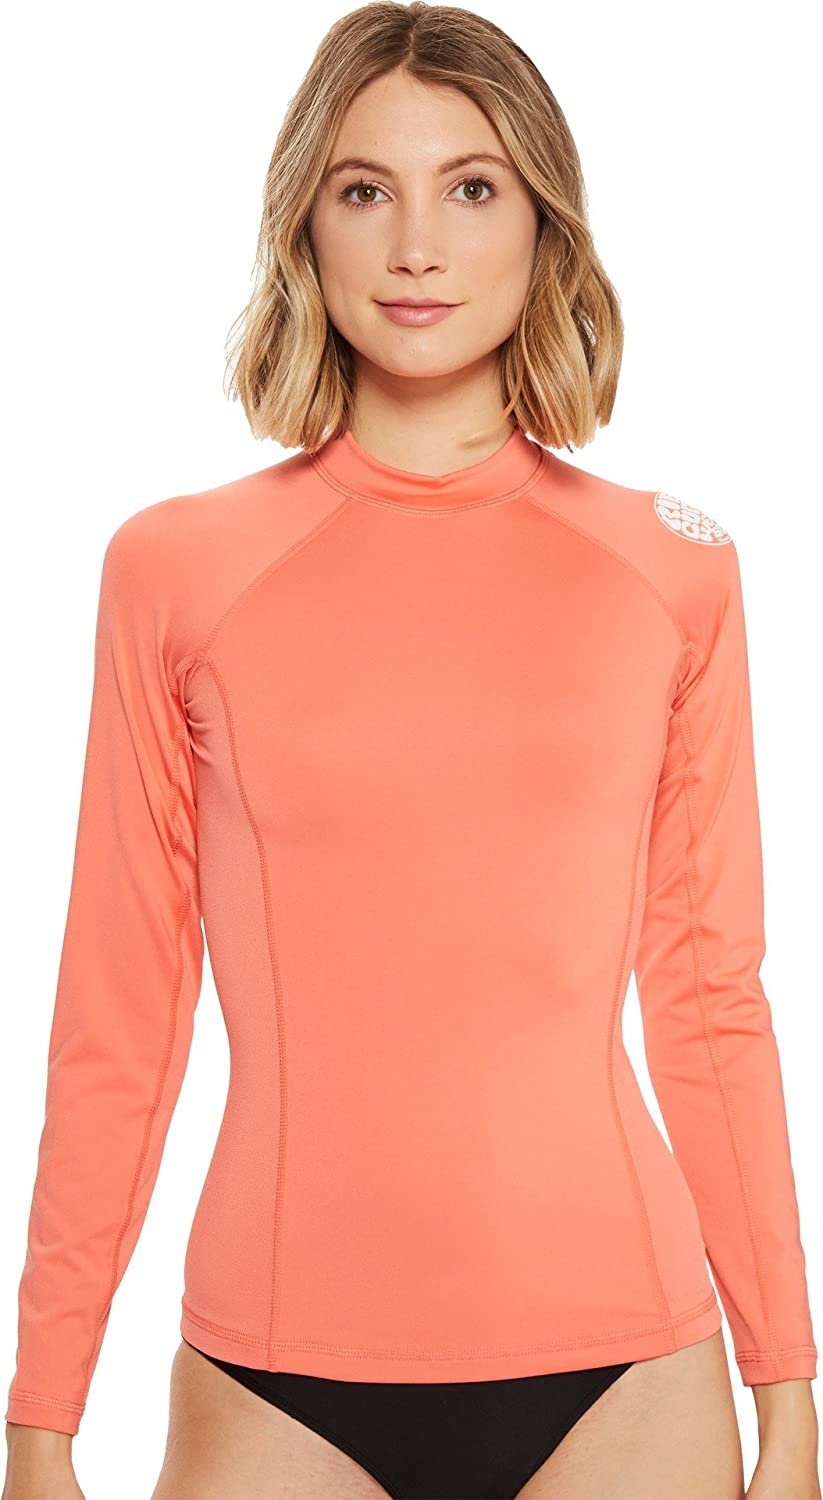 Rip Curl Womens G-Bomb Surf Long Sleeve Rashguard